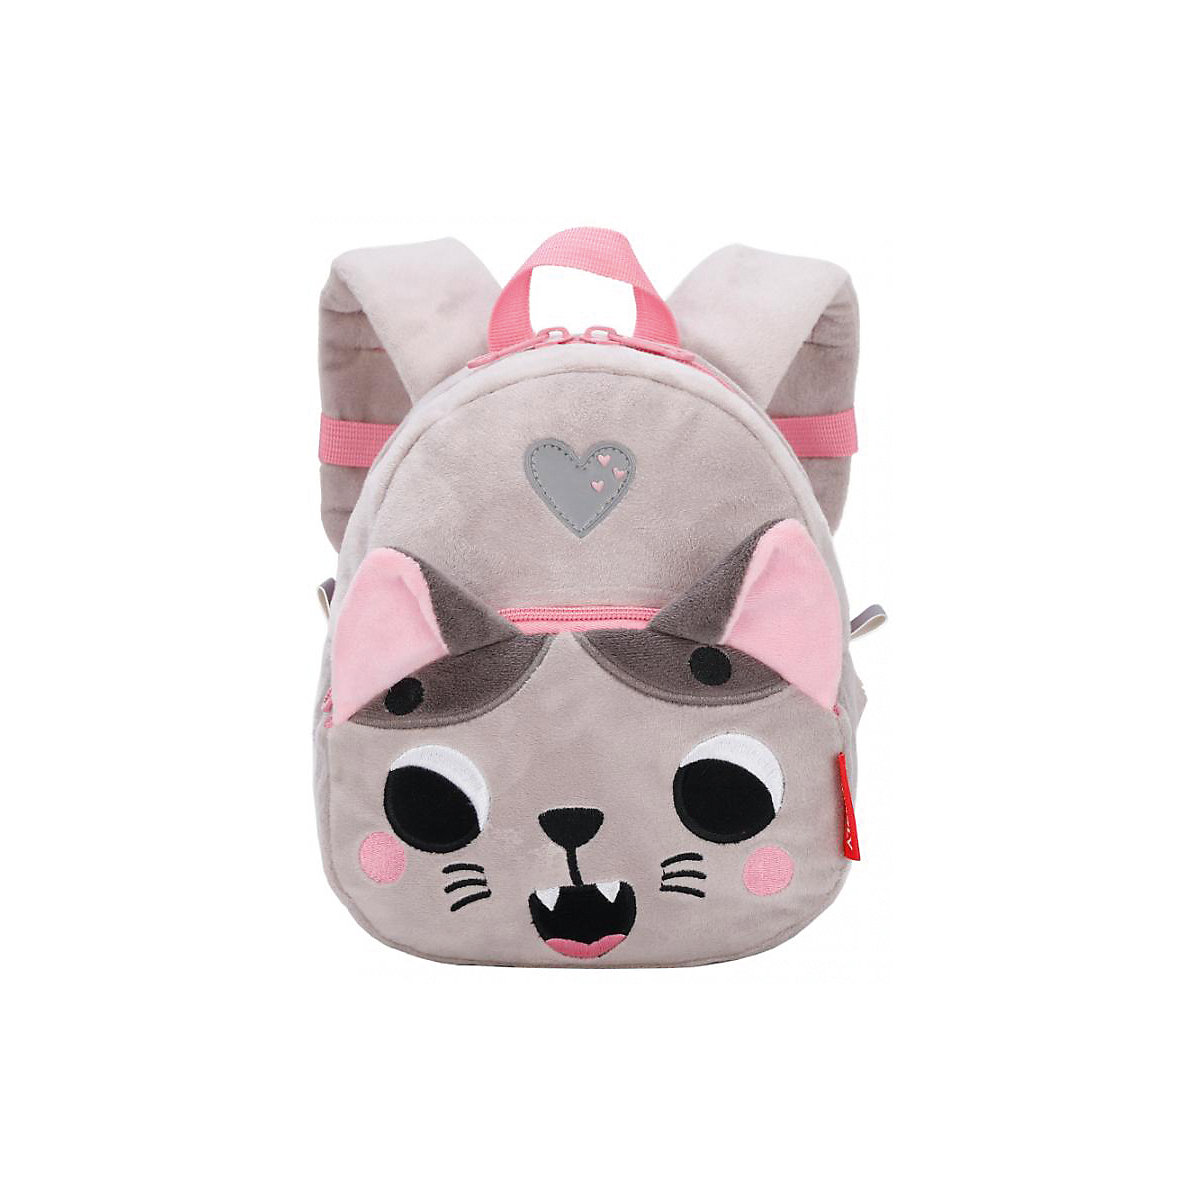 GRIZZLY School Bags 11863950 Schoolbag Backpack Orthopedic Bag For Boy And Girl Animals MTpromo